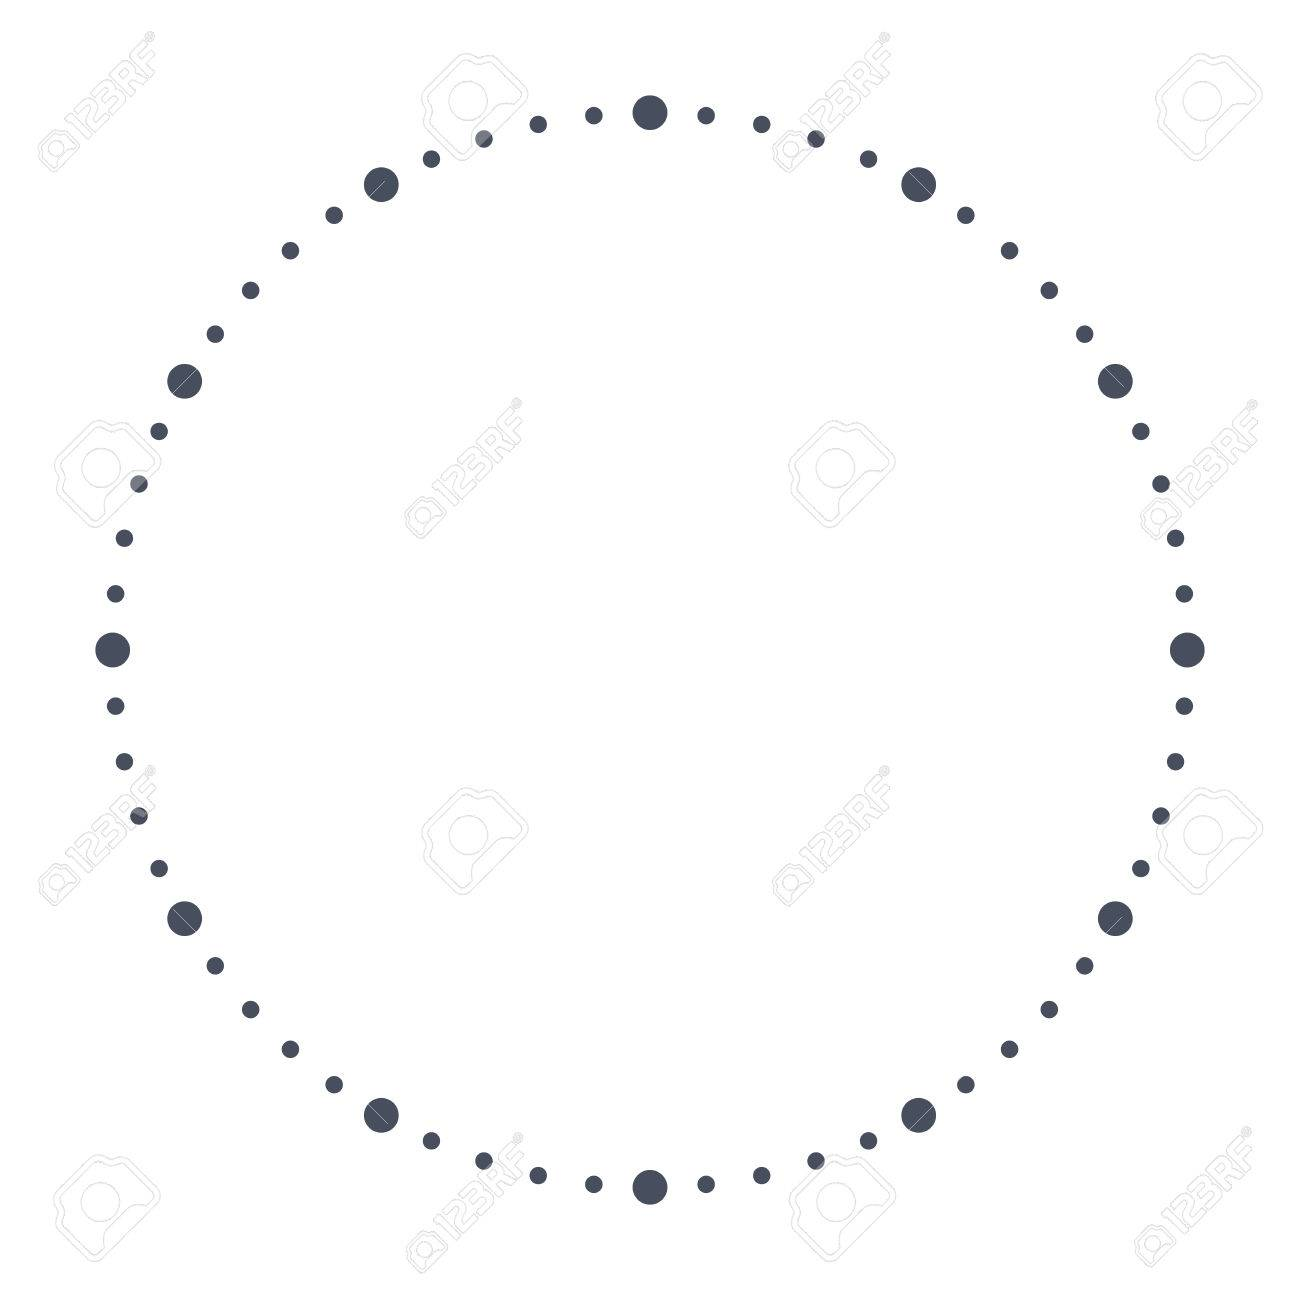 Blank Clock Face Just Set Your Own Time Royalty Free Cliparts Vectors And Stock Illustration Image 61834601